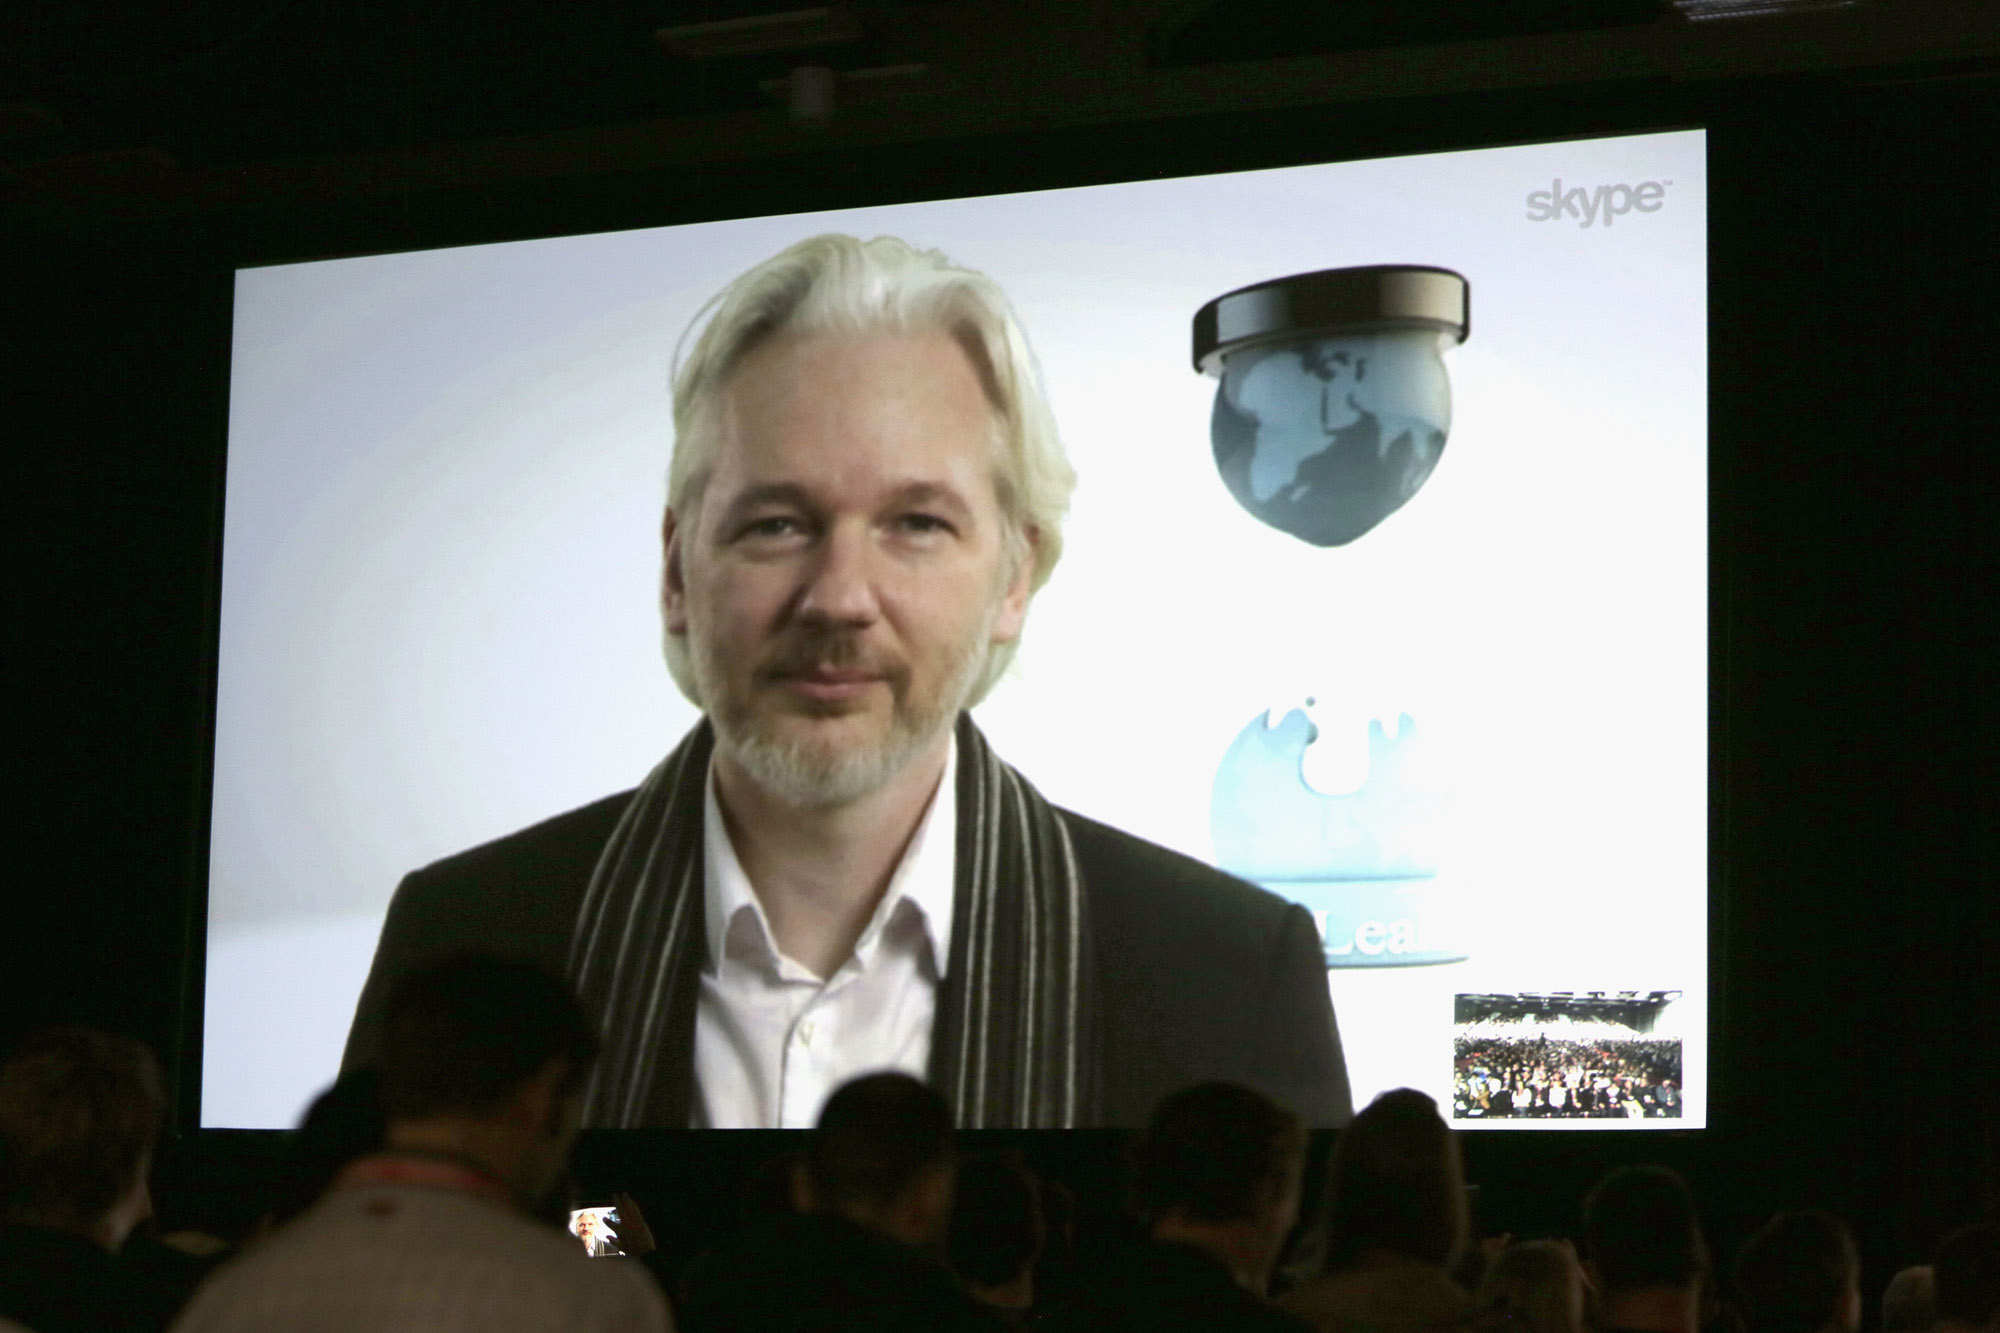 Wikileaks founder Julian Assange speaks onstage via Skype at SXSW. Photo: Getty Images